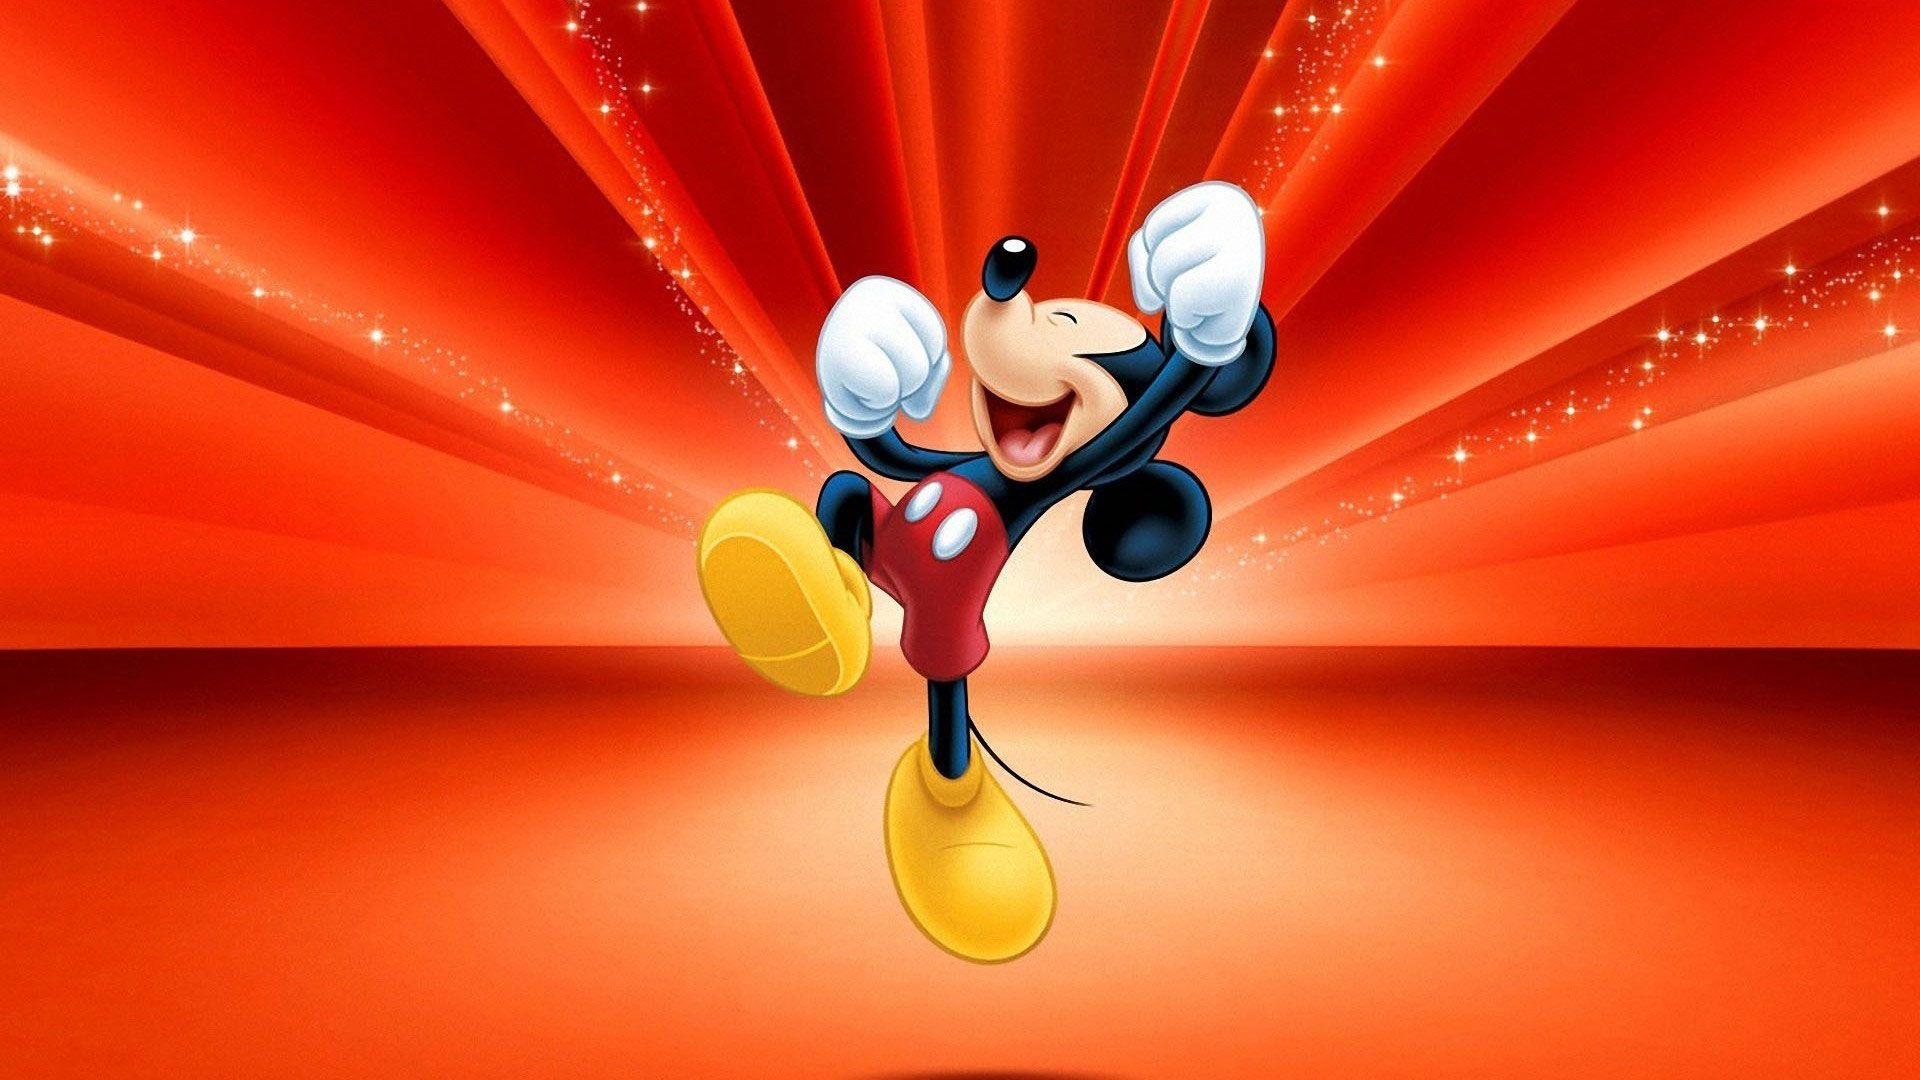 Hd Pics Photos Stunning Attractive Mickey Mouse 8 Hd Desktop Background Wallpaper Mickey Mouse Wallpaper Iphone Mickey Mouse Wallpaper Mickey Mouse Pictures